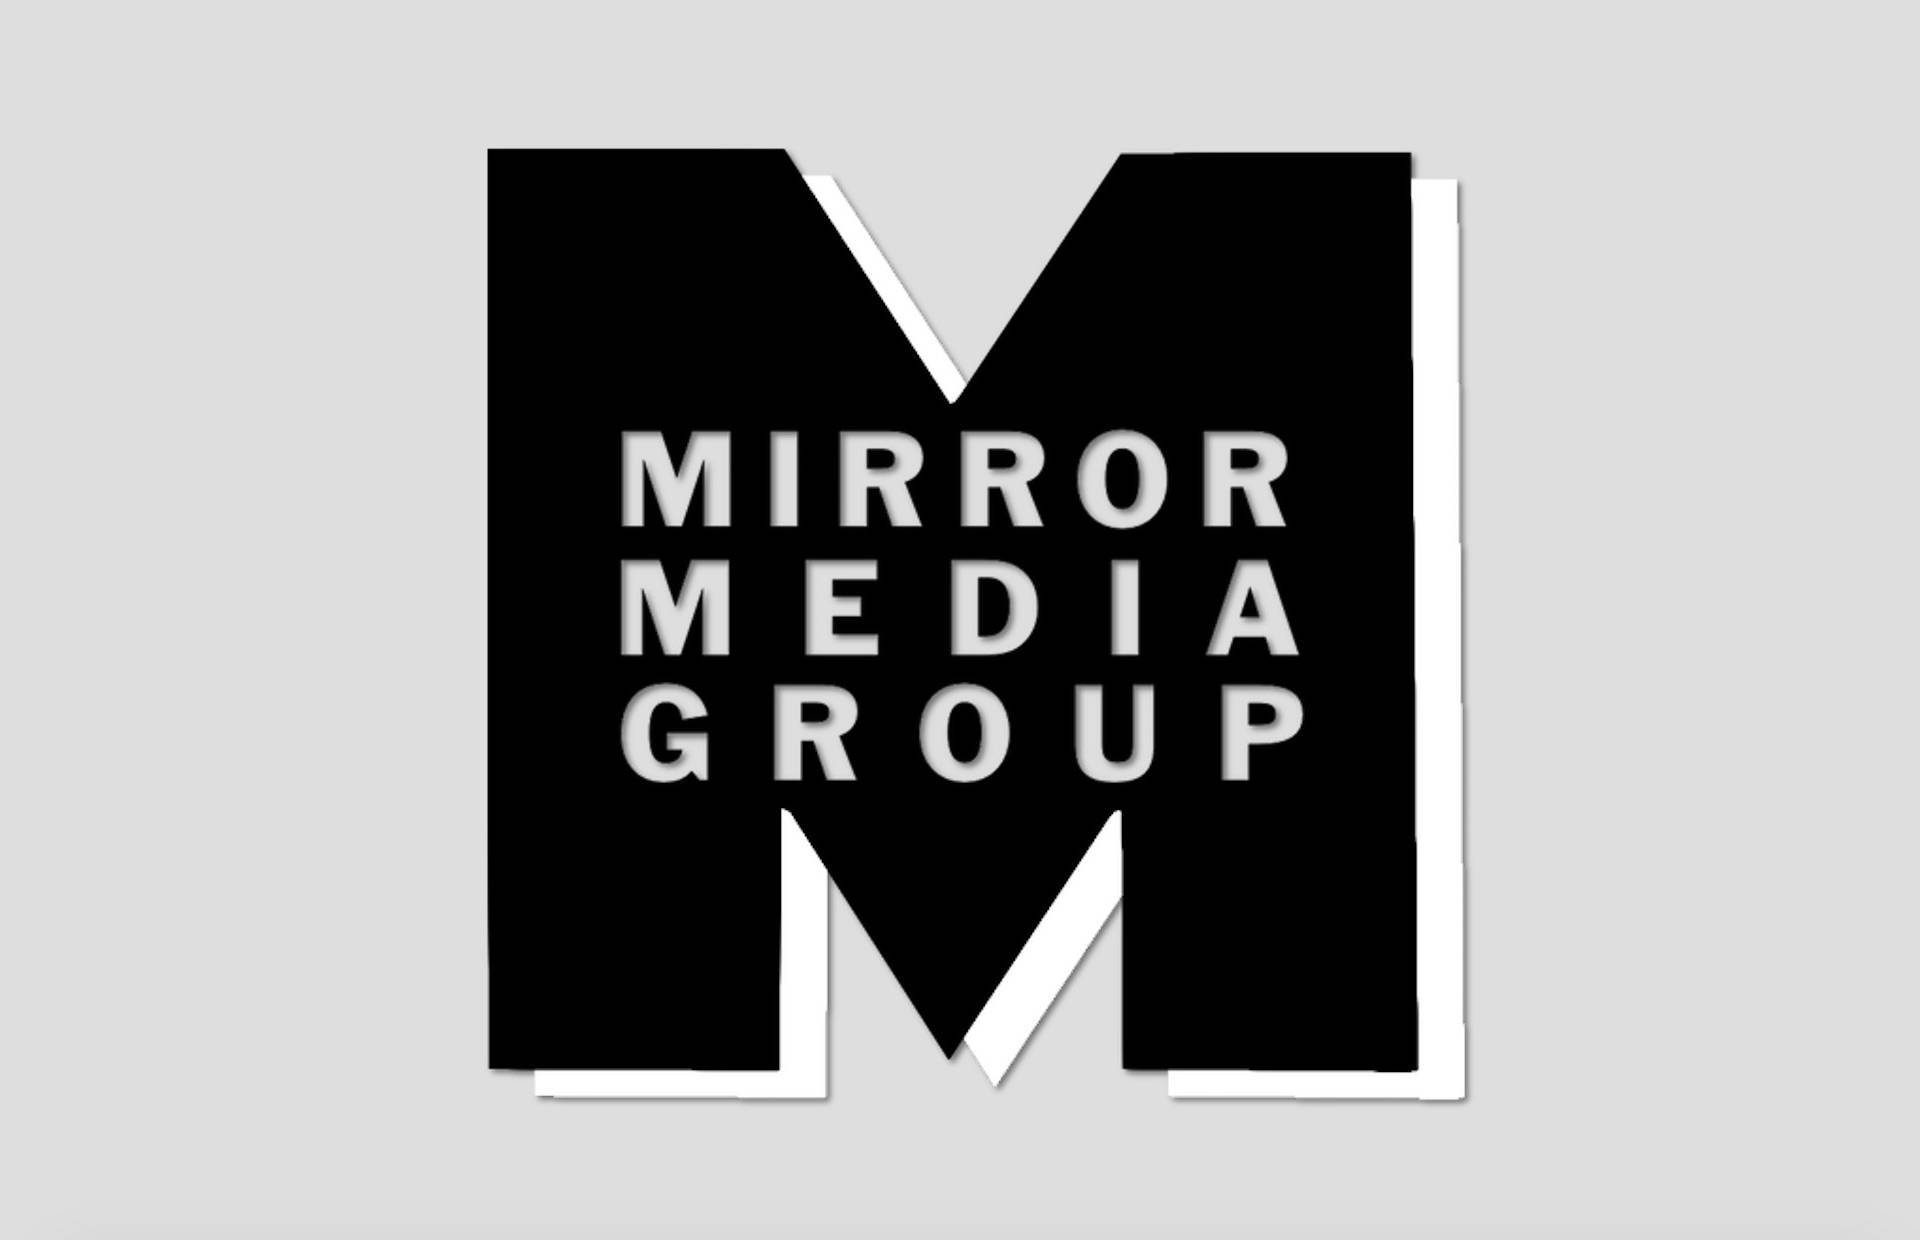 Mirror Media Group (Upcoming)